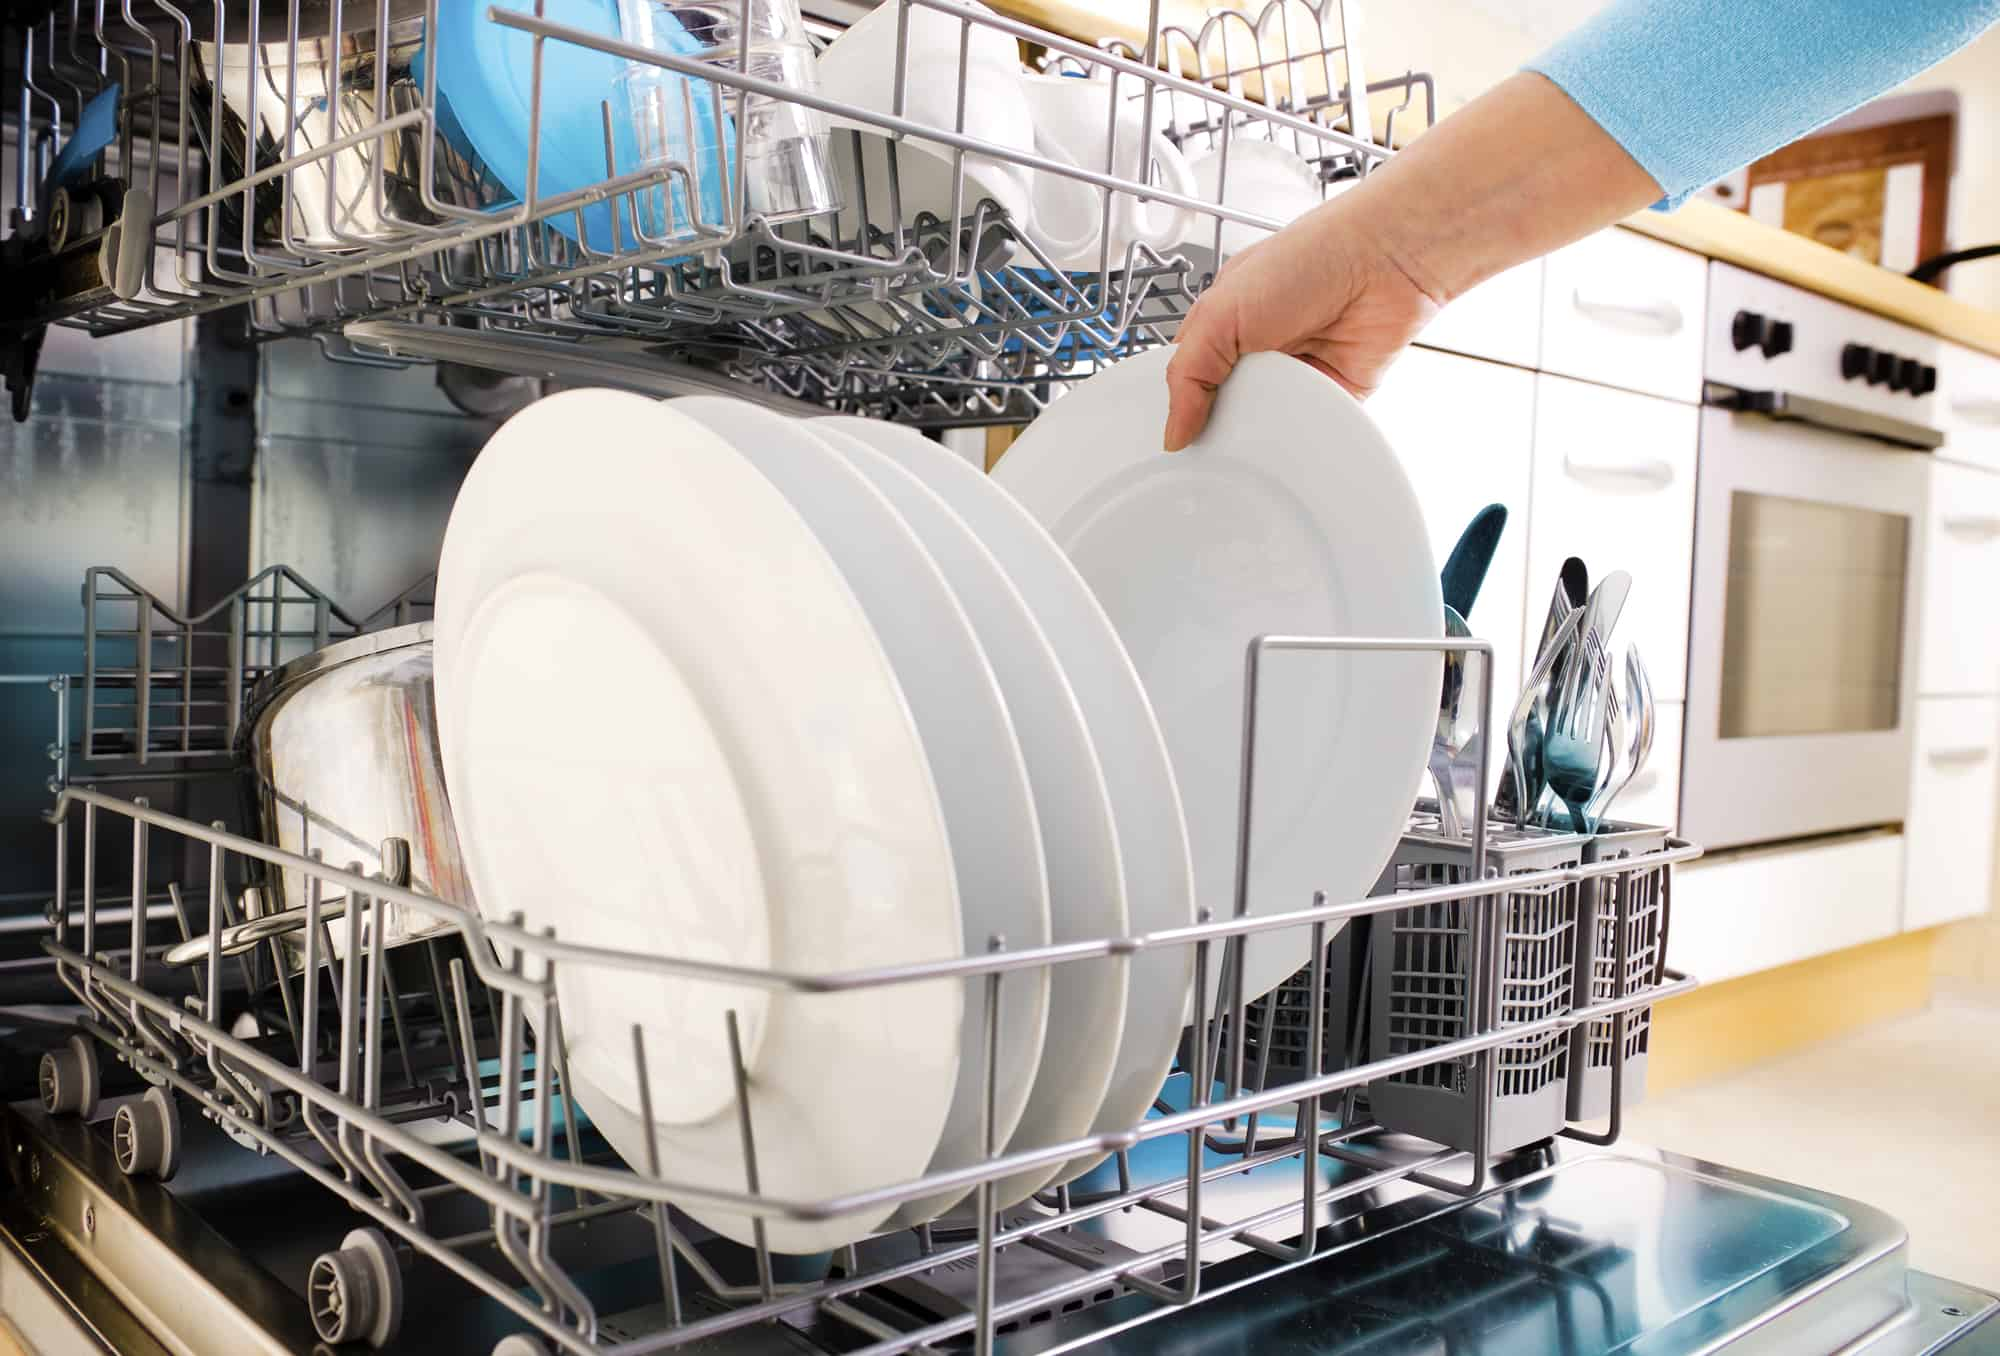 What Makes A Good Dishwasher?